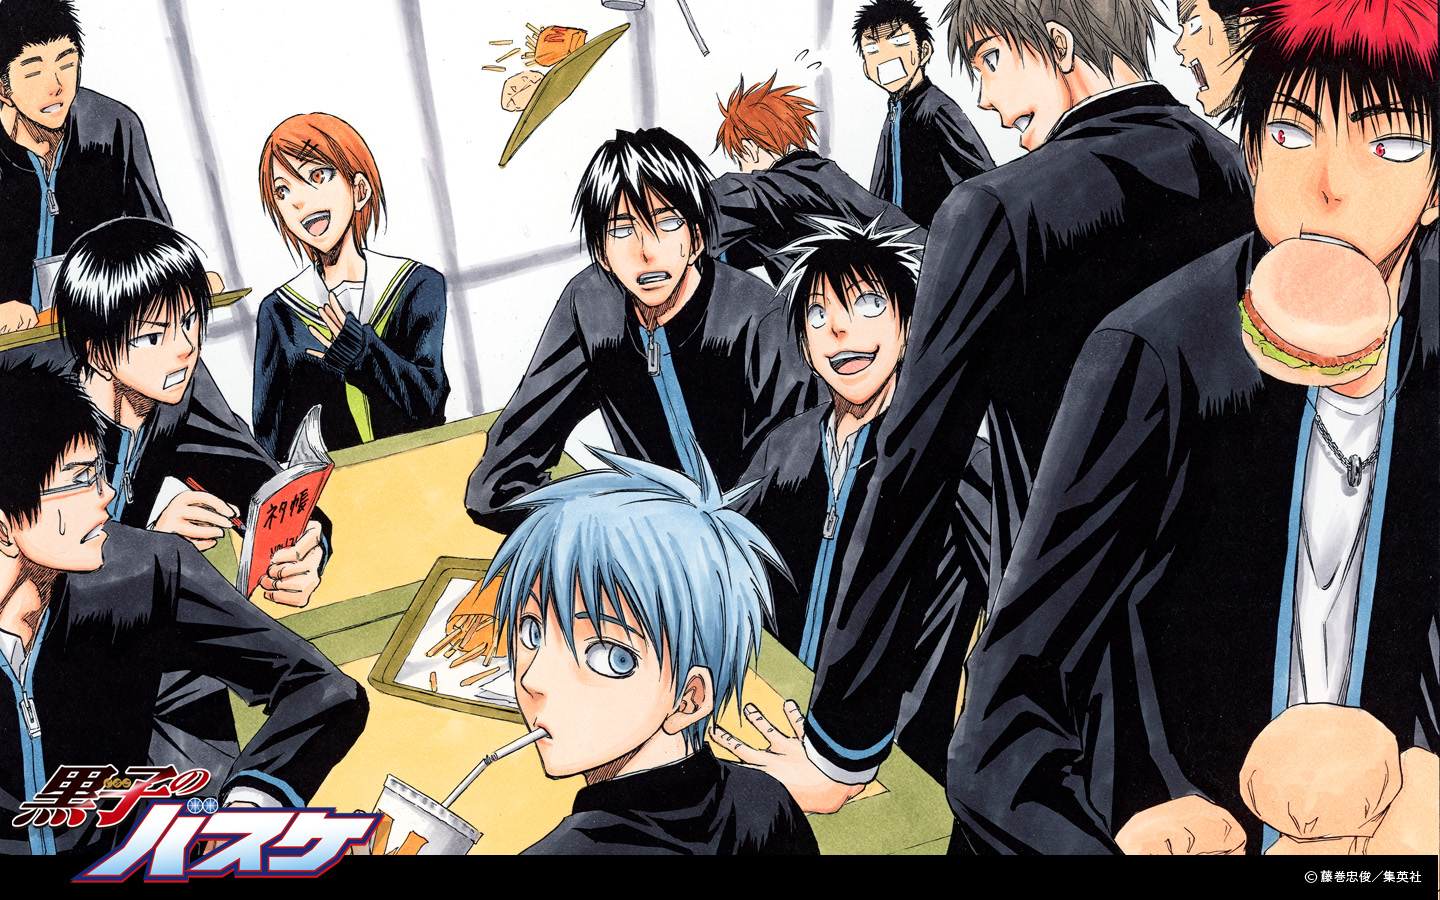 Kuroko No Basuke Anime Wallpapers Hd 4k Download For